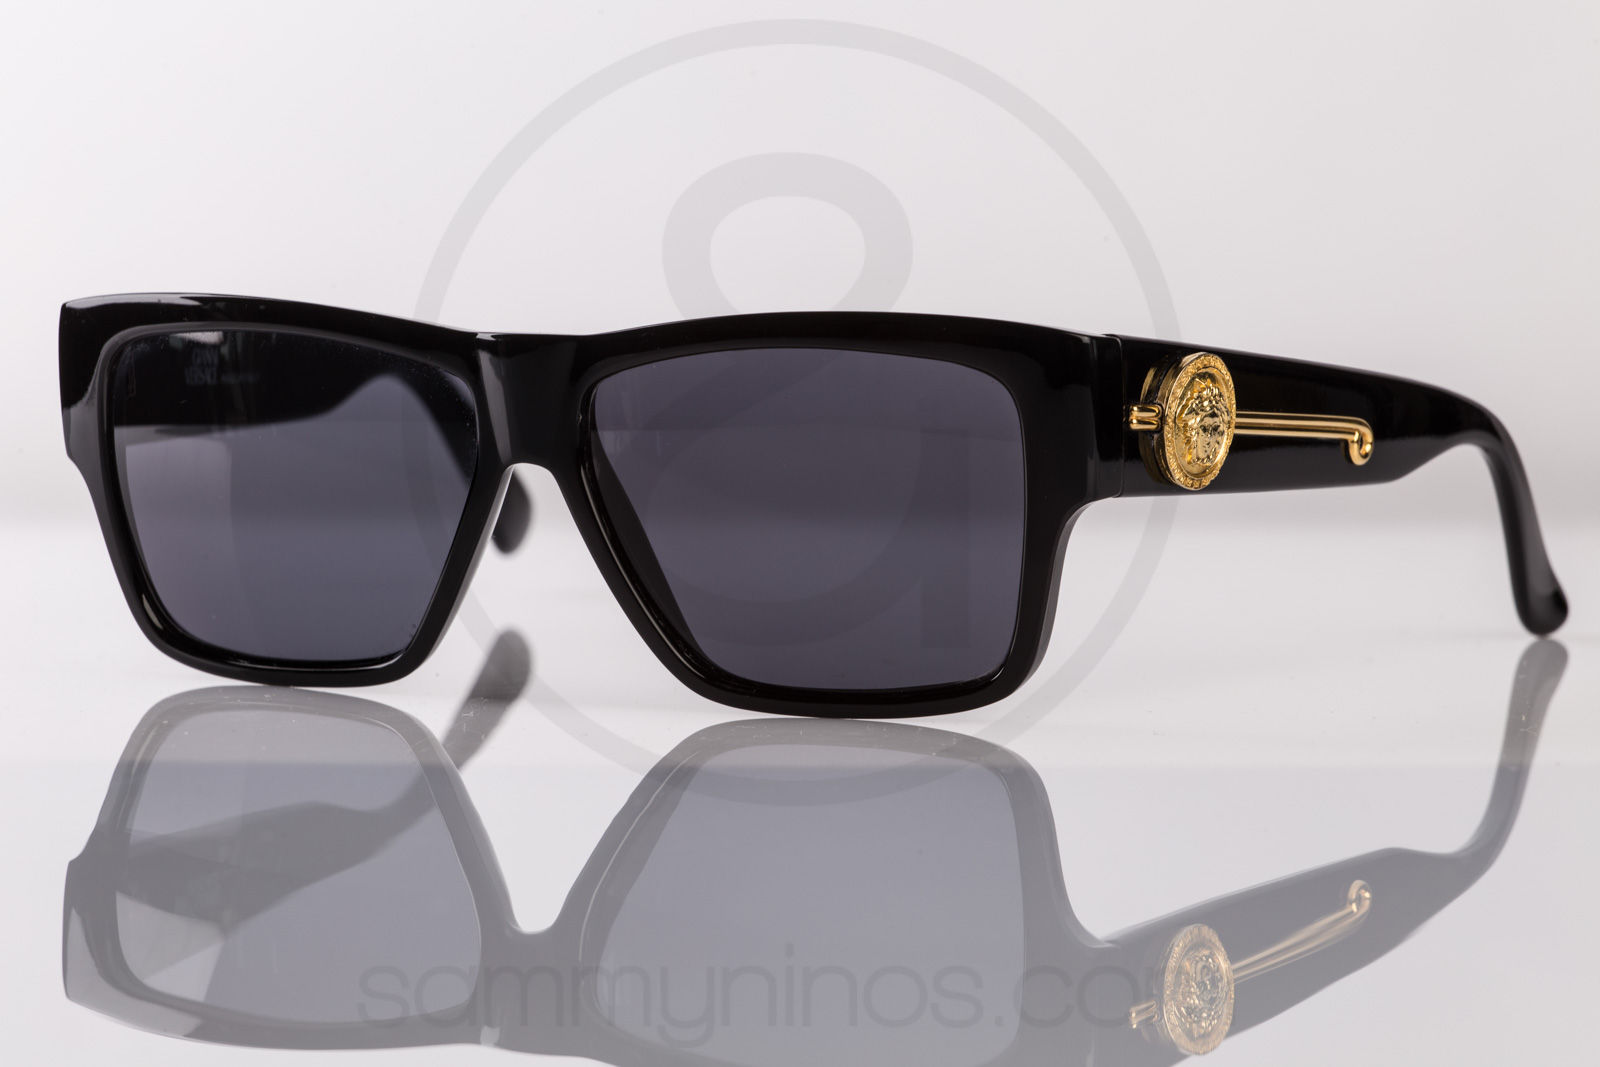 e2d18a0afbbee Previous  Next. HomeSOLD OUTGianni Versace 372 dm 852